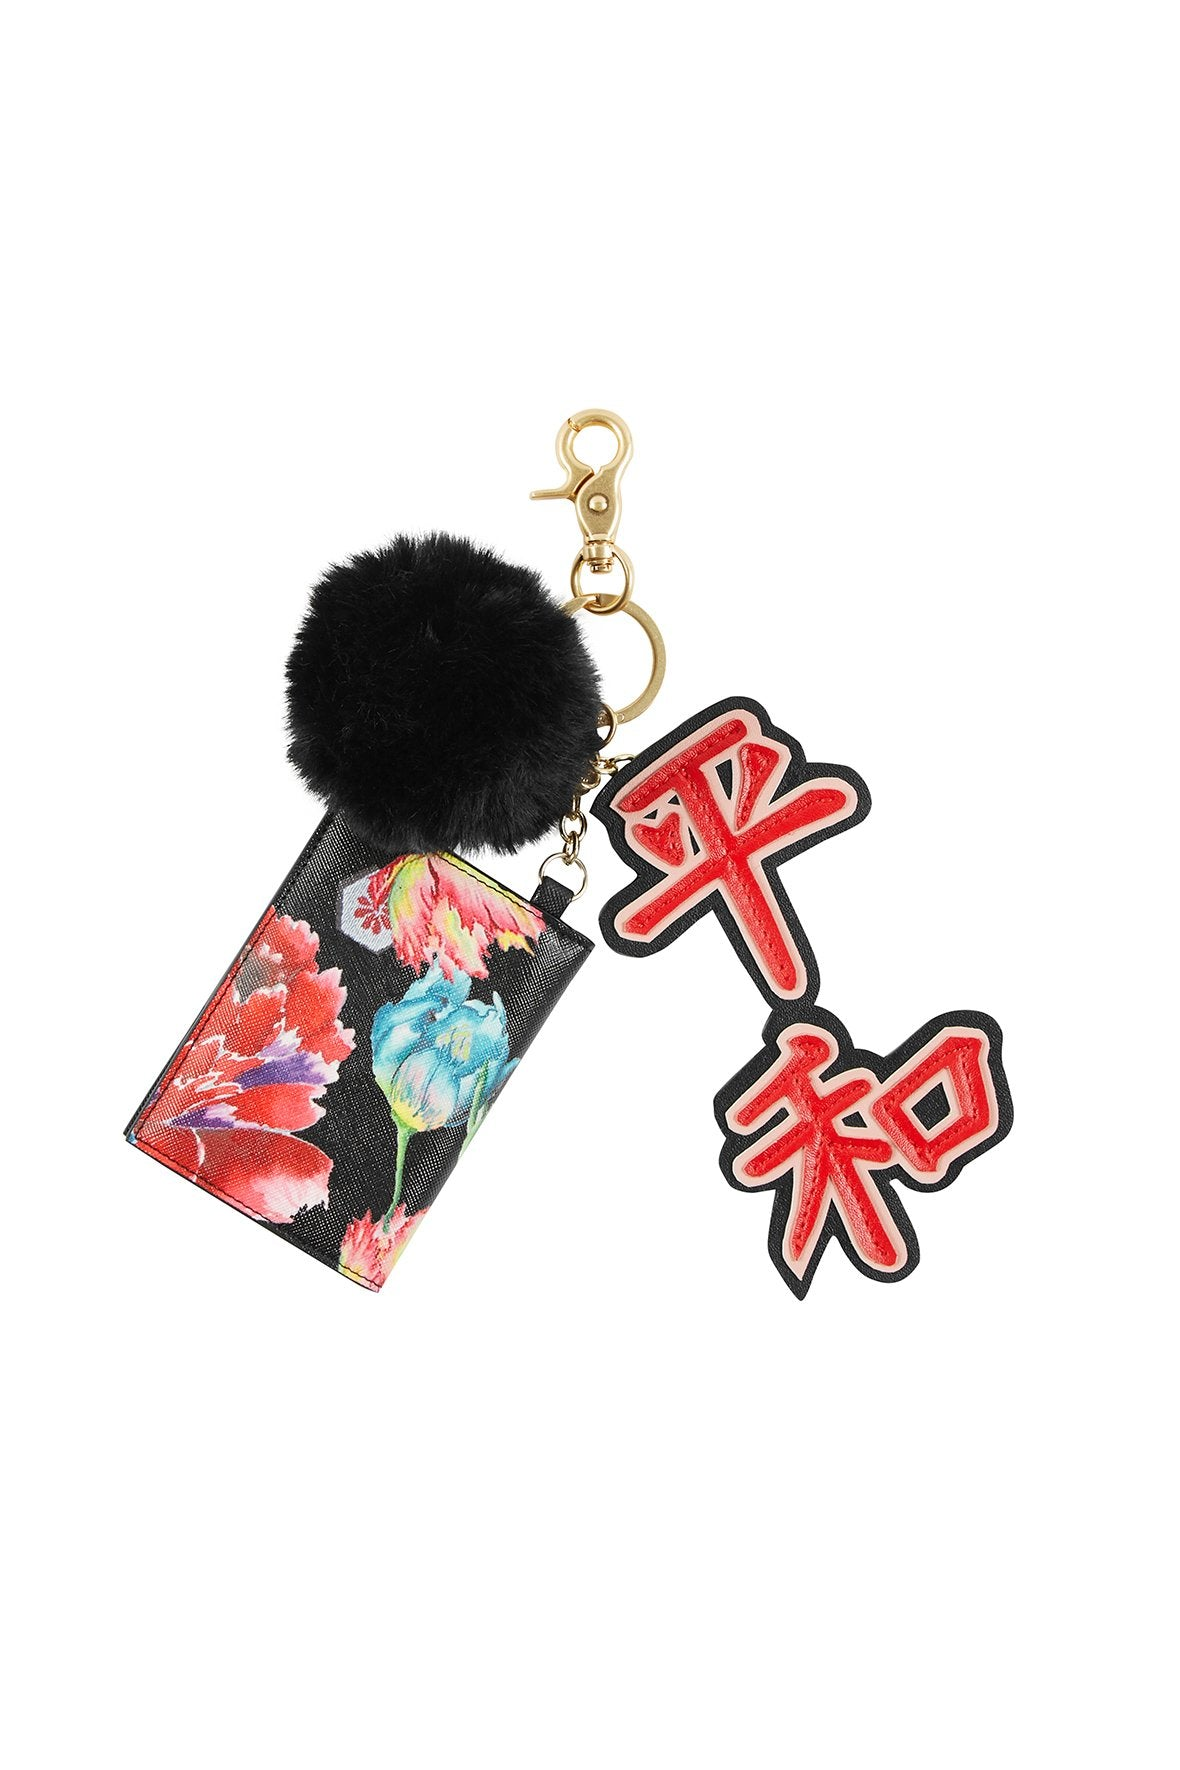 JAPANESE KEYRING PAINTED LAND